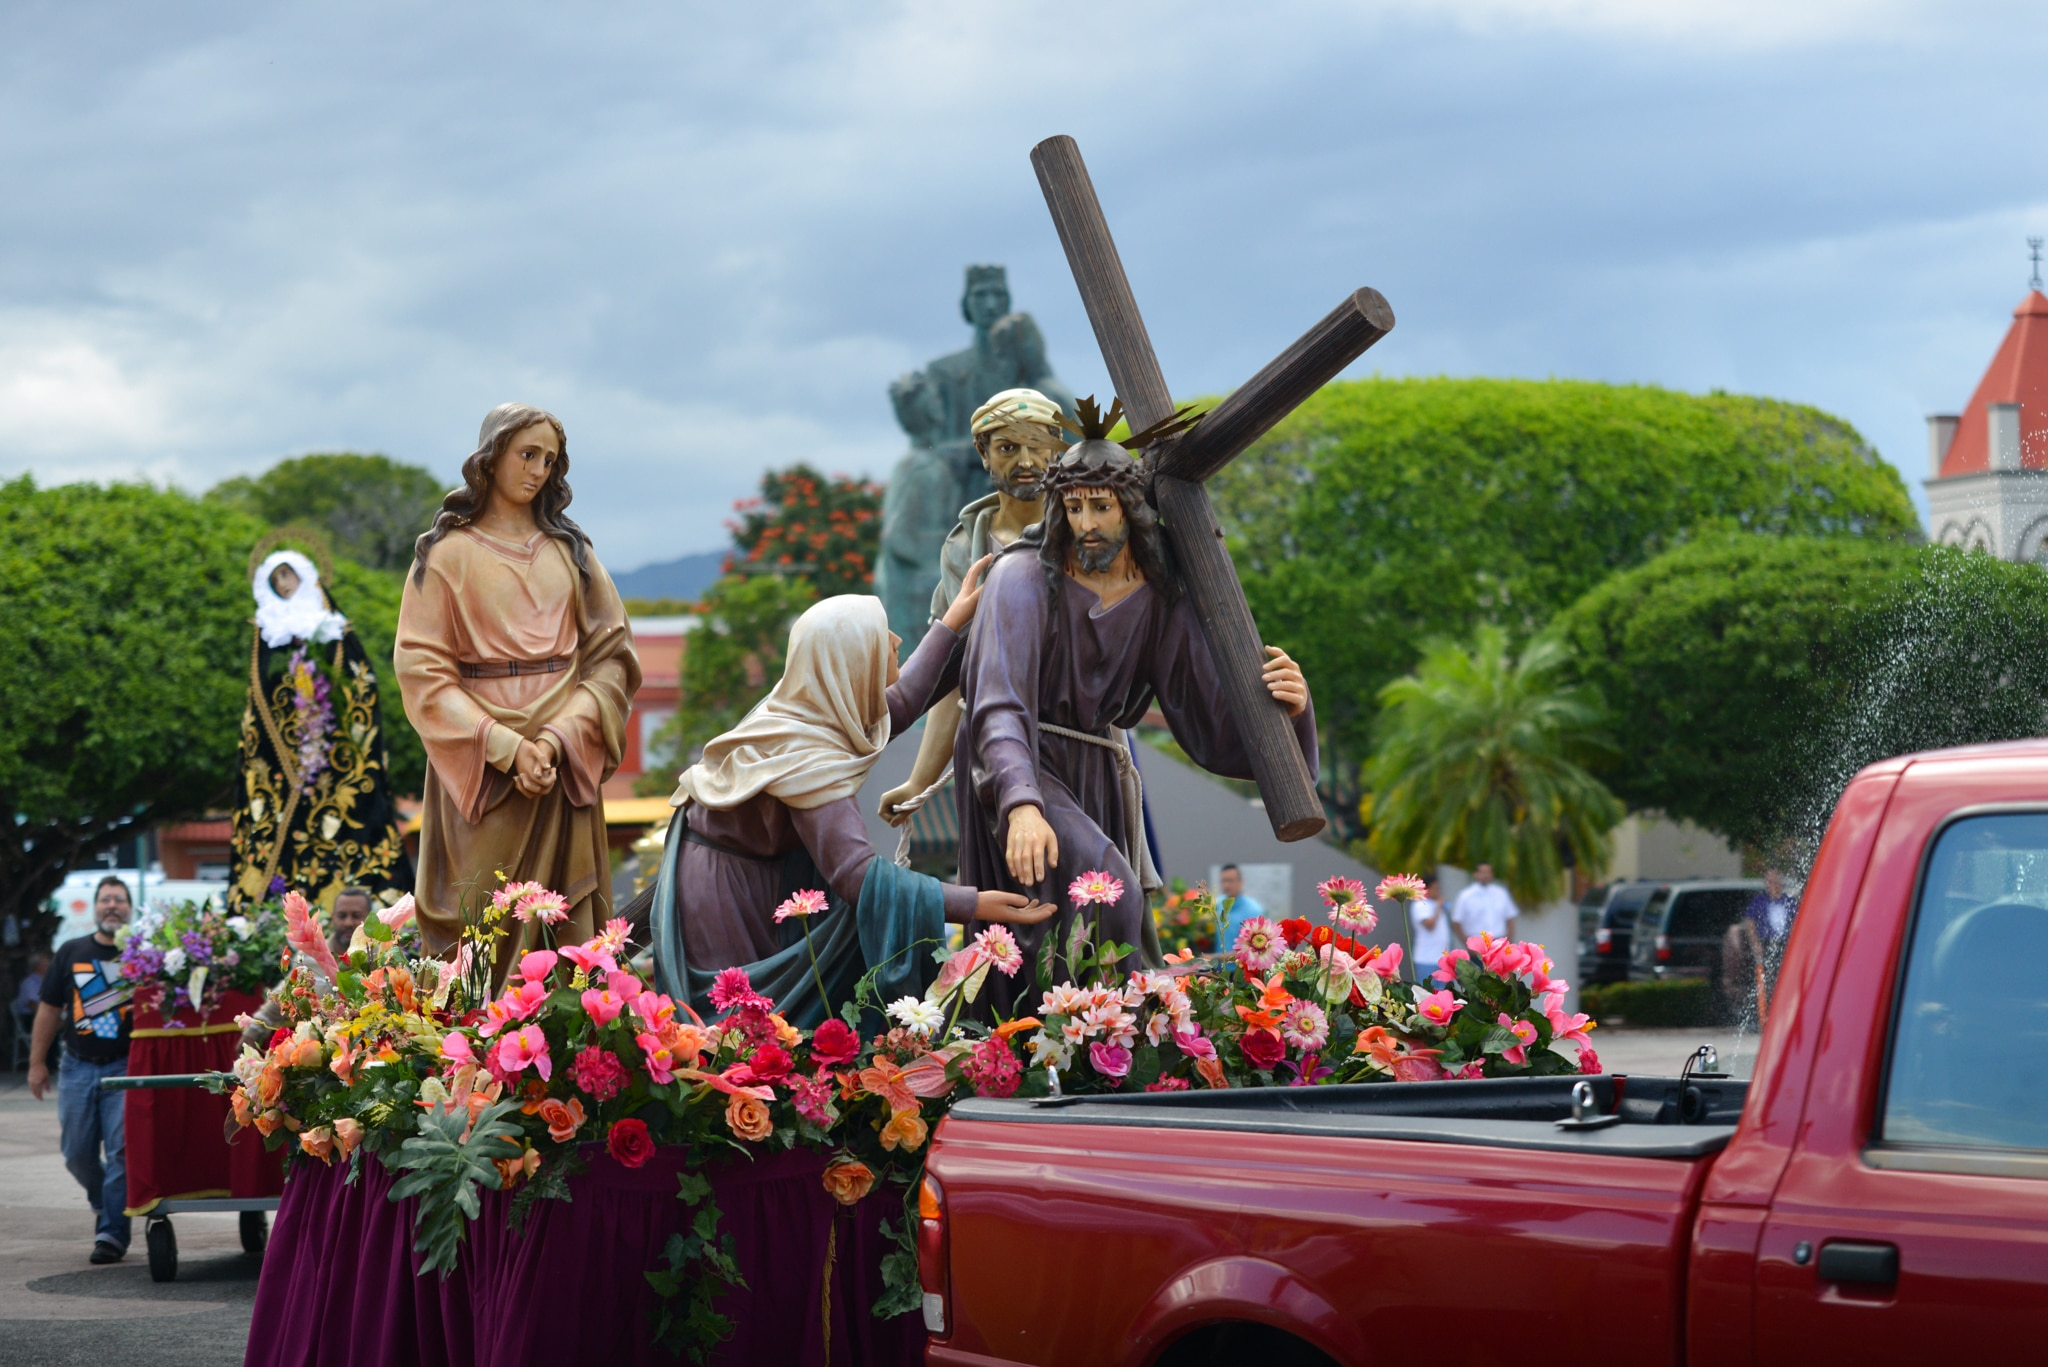 Statues and flowers on float being pulled by truck (© Marina Movschowitz/Alamy)